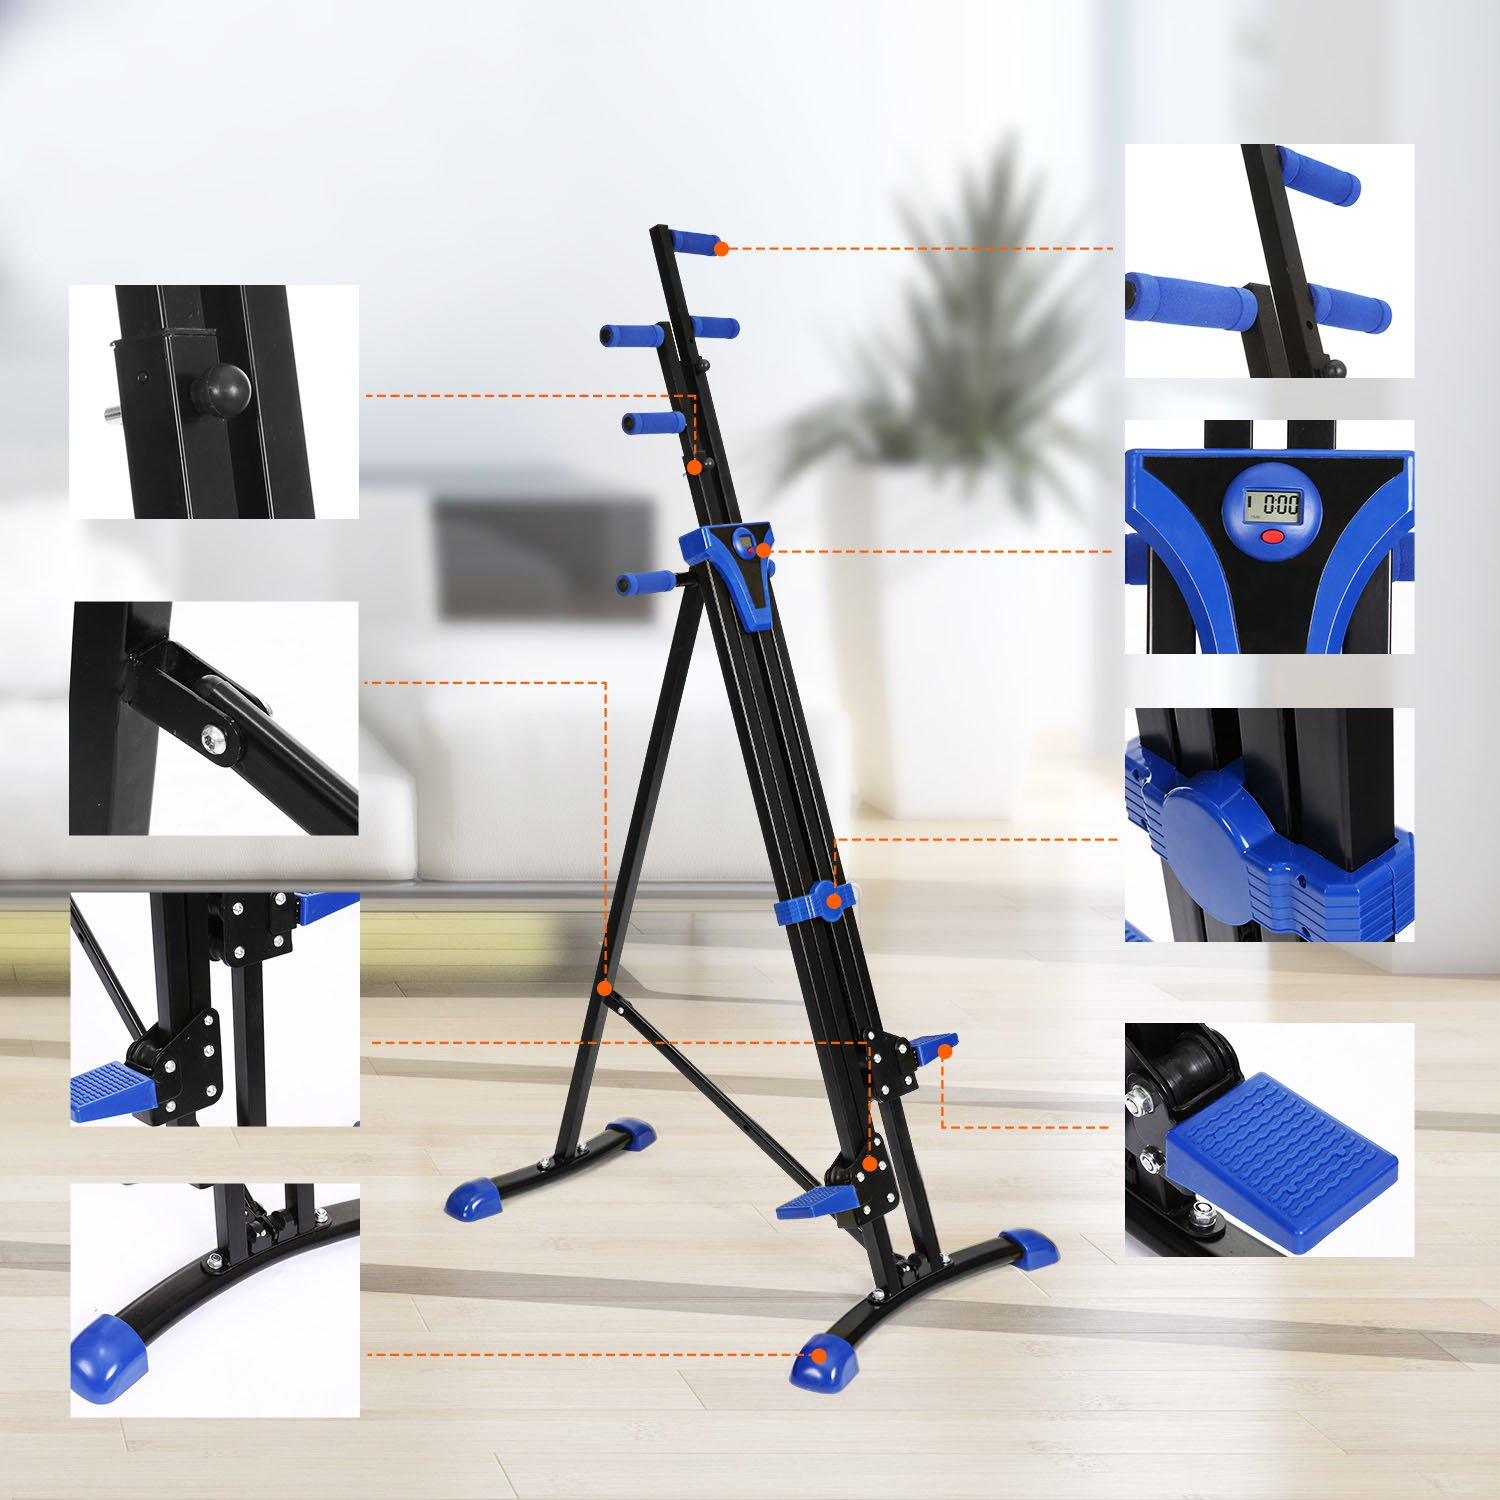 Moroly Vertical Climber 2 in 1 Climbing Stepper Folding Exercise Machine,Fitness Equipment Climber for Home Gym Cardio Workout Body Trainer (US Stock) (Blue)